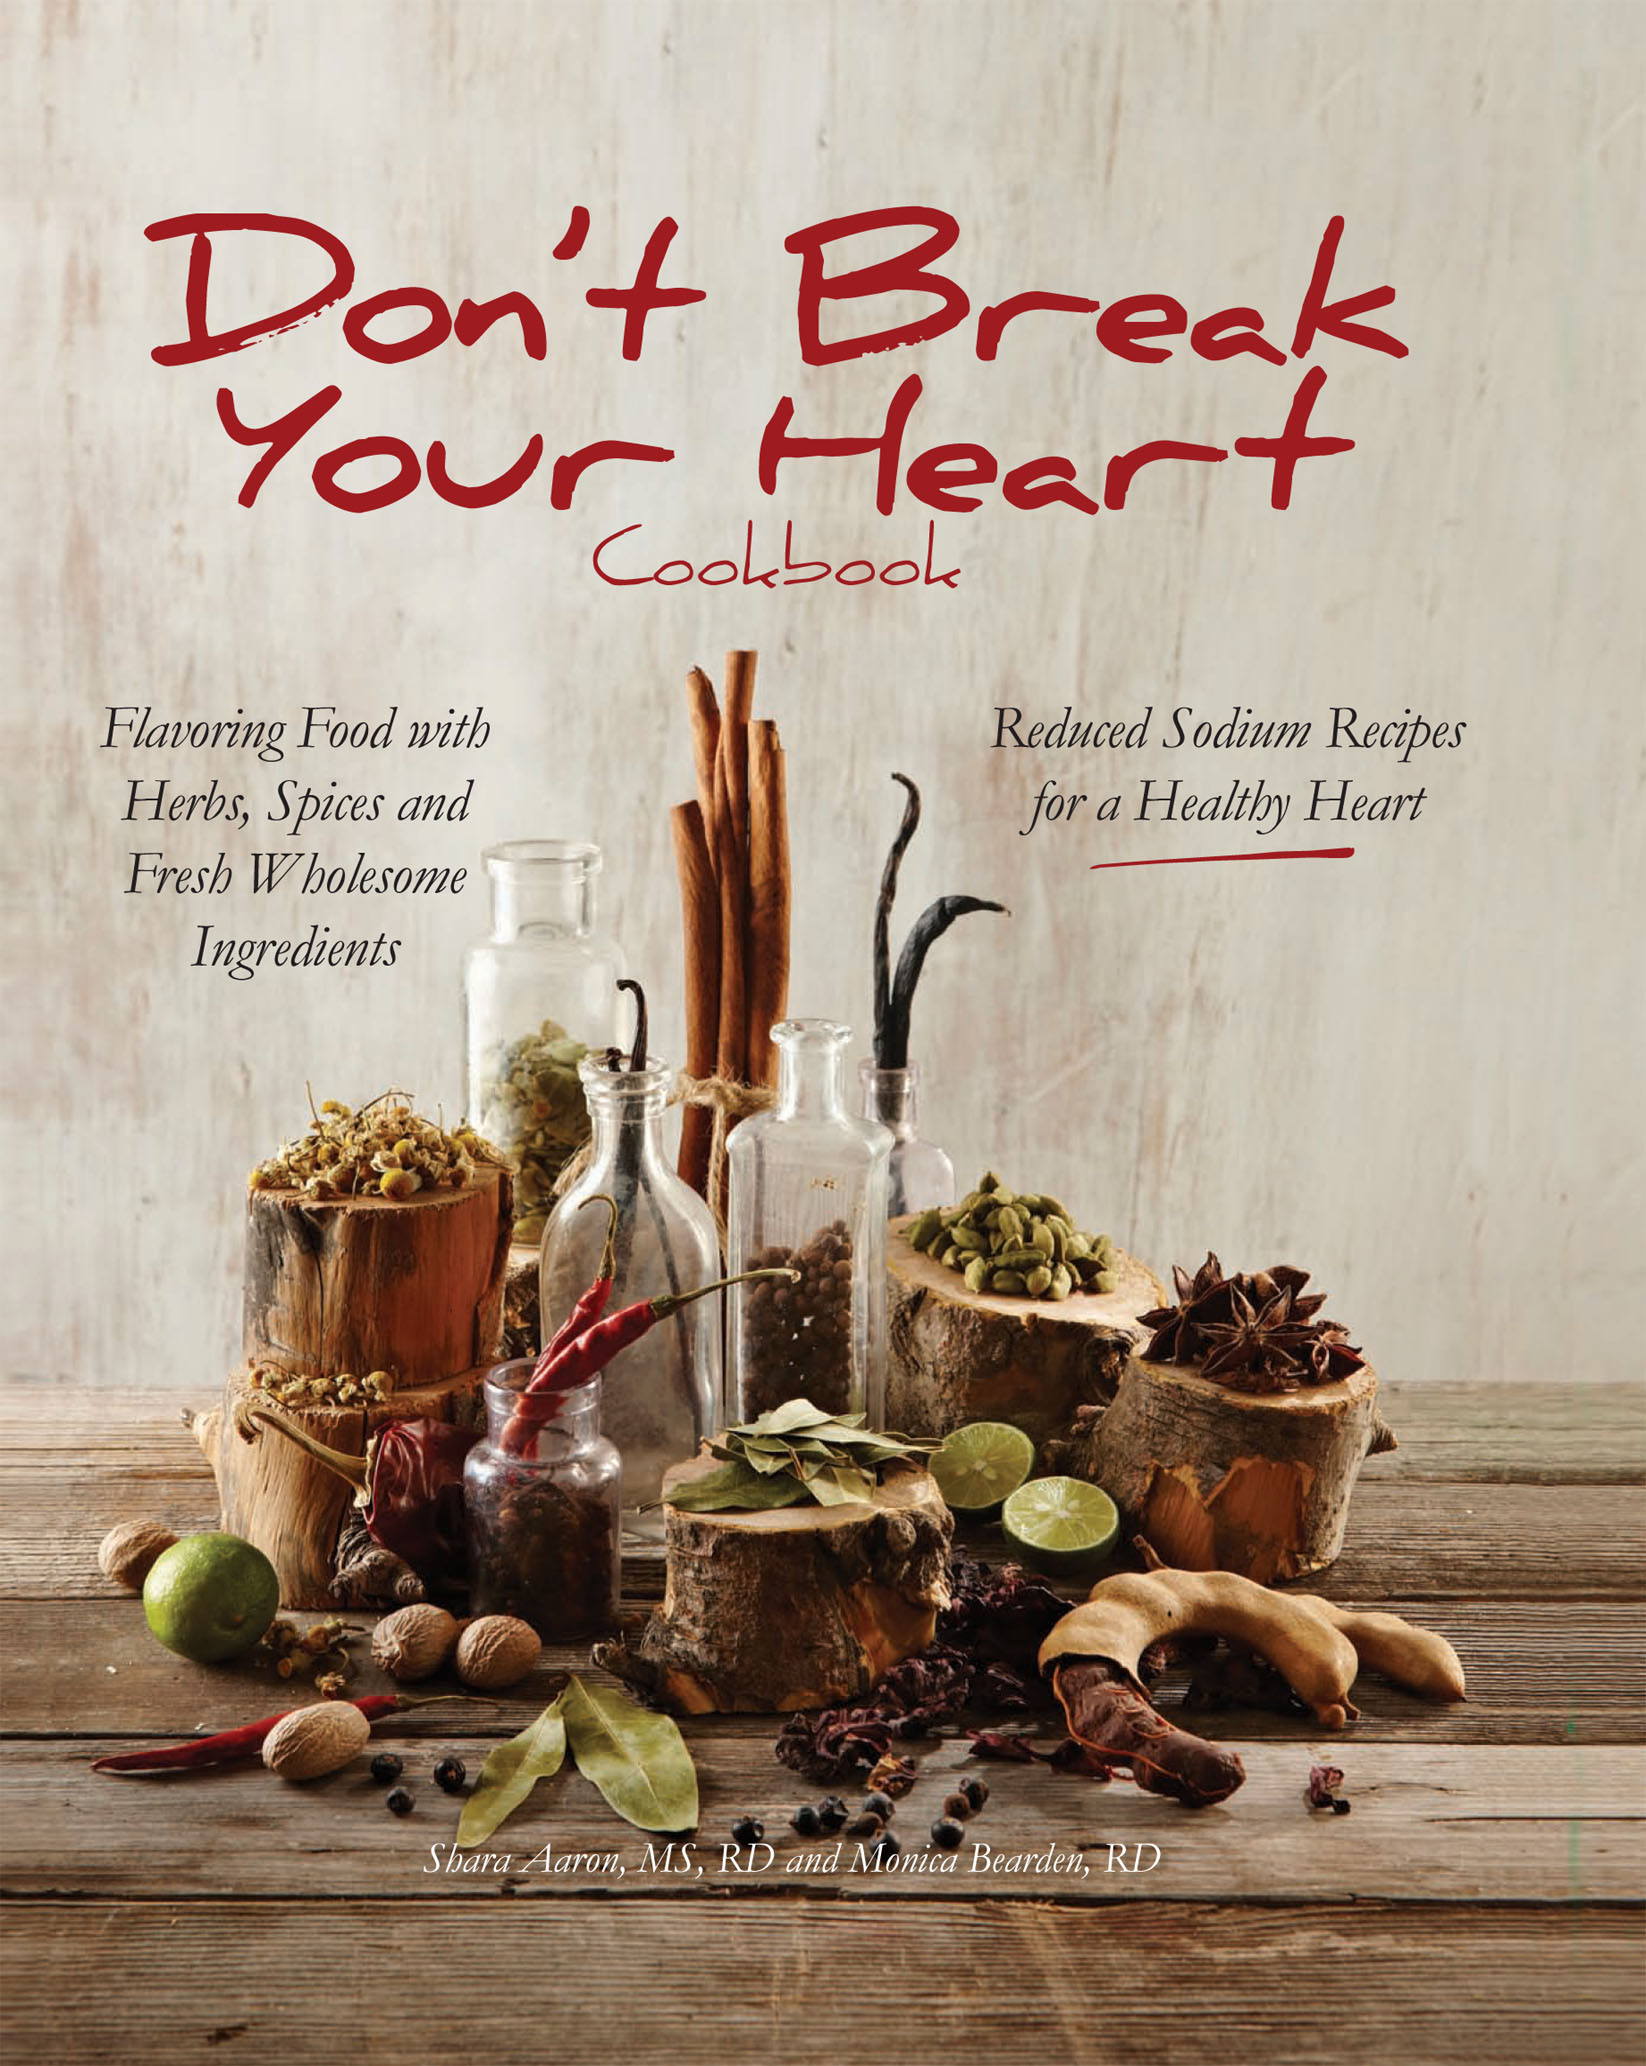 Don't Break Your Heart Cookbook